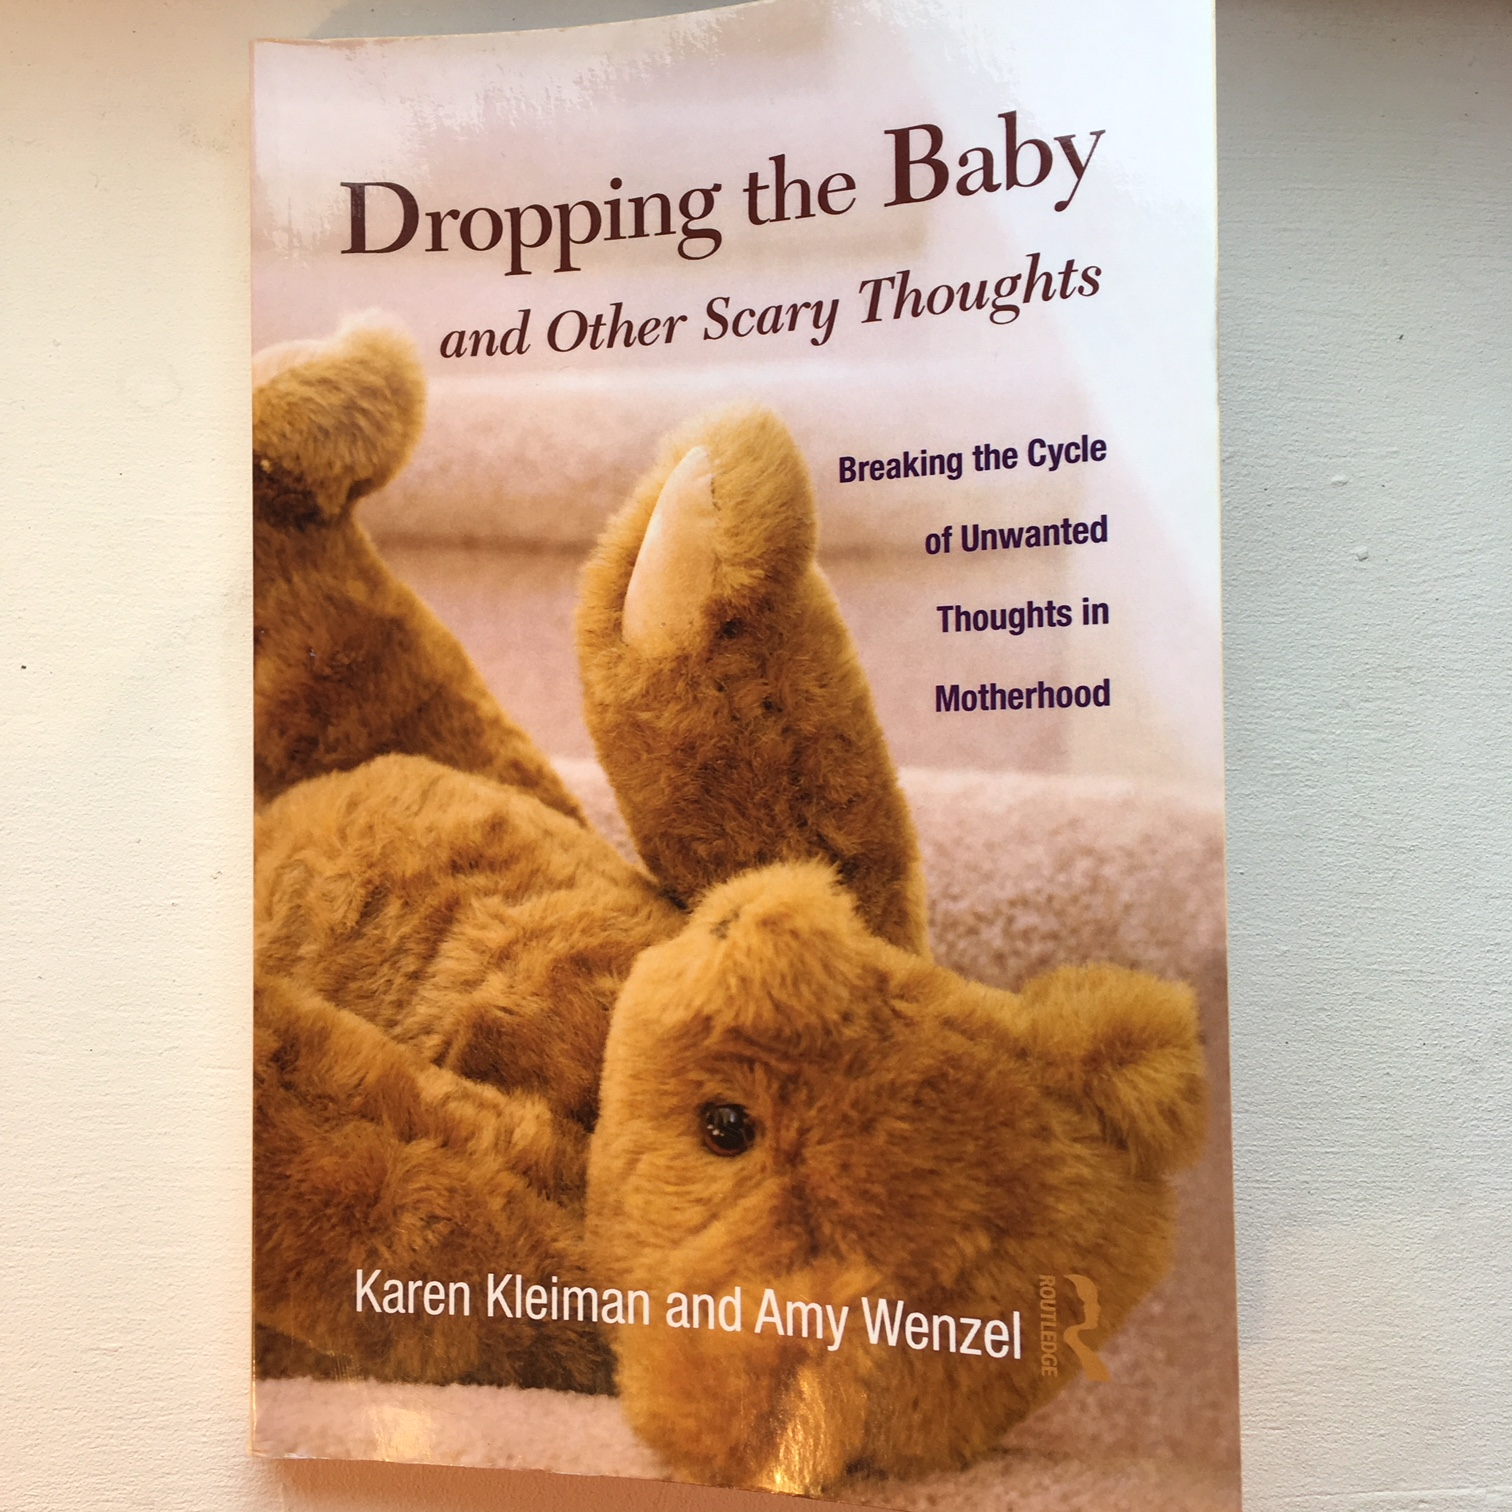 Dropping the Baby - Karen Kleinman and Amy Wenzel   A great book if you are scared about your thoughts - contains really useful and reassuring information, a good self-help section, an explanation of different treatments and also discusses what others can do to help.  If you are too scared to talk to someone about how you are thinking, I'd recommend reading this first.